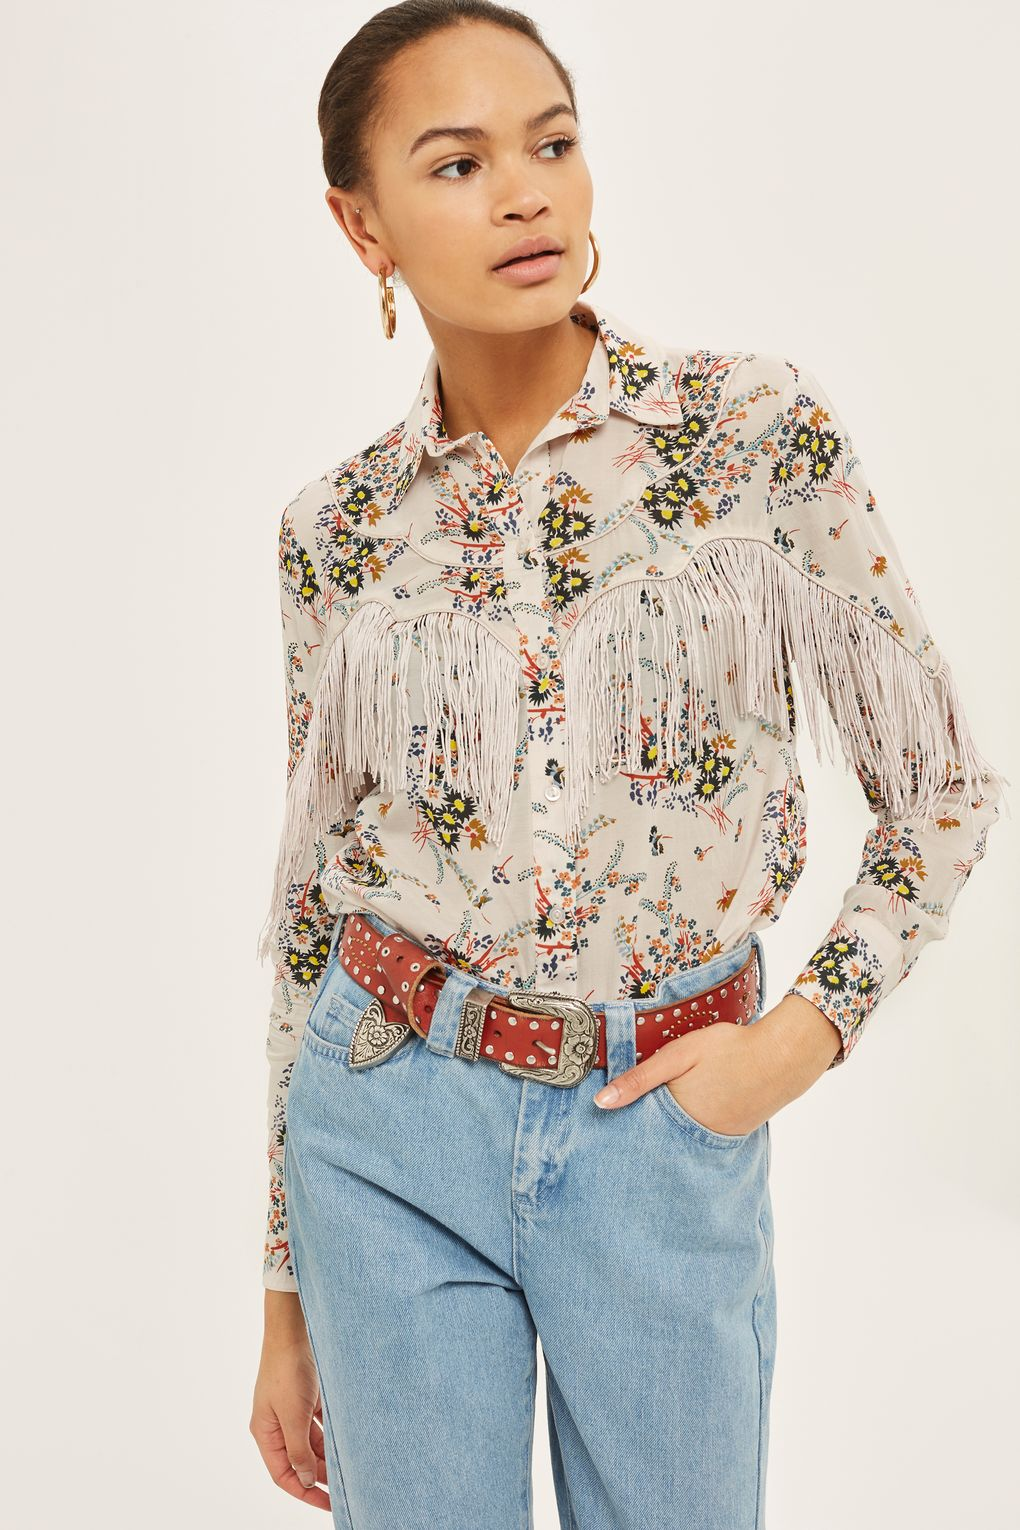 Five key pieces to nail the 'Rodeo' trend